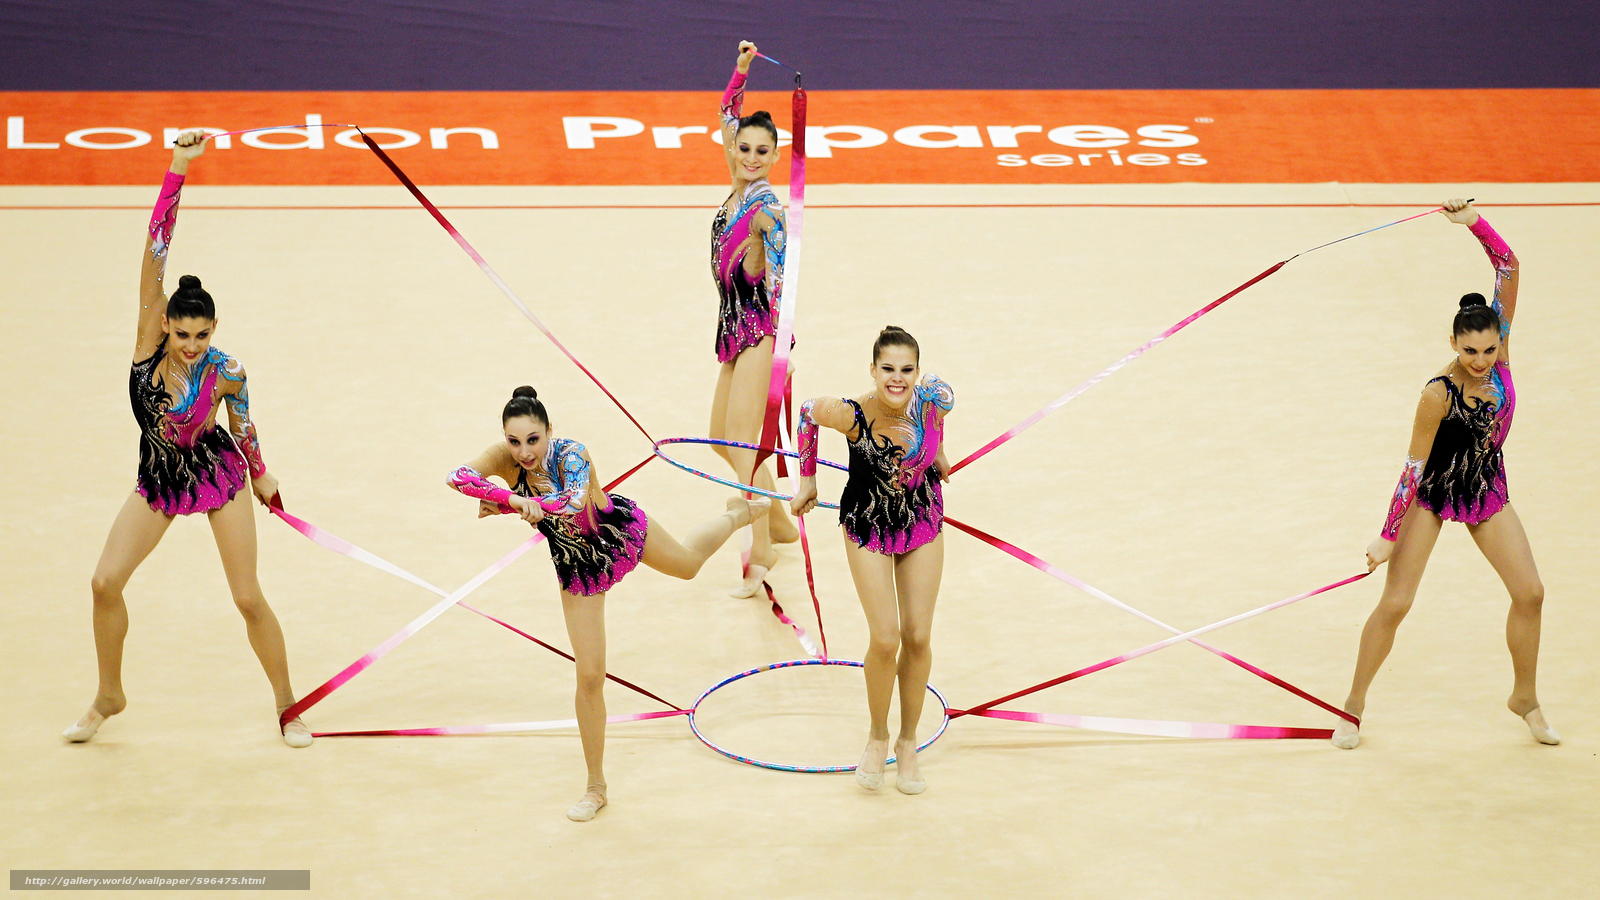 <b>Gymnastics Wallpaper</b> - <b>Wallpapers</b> Browse